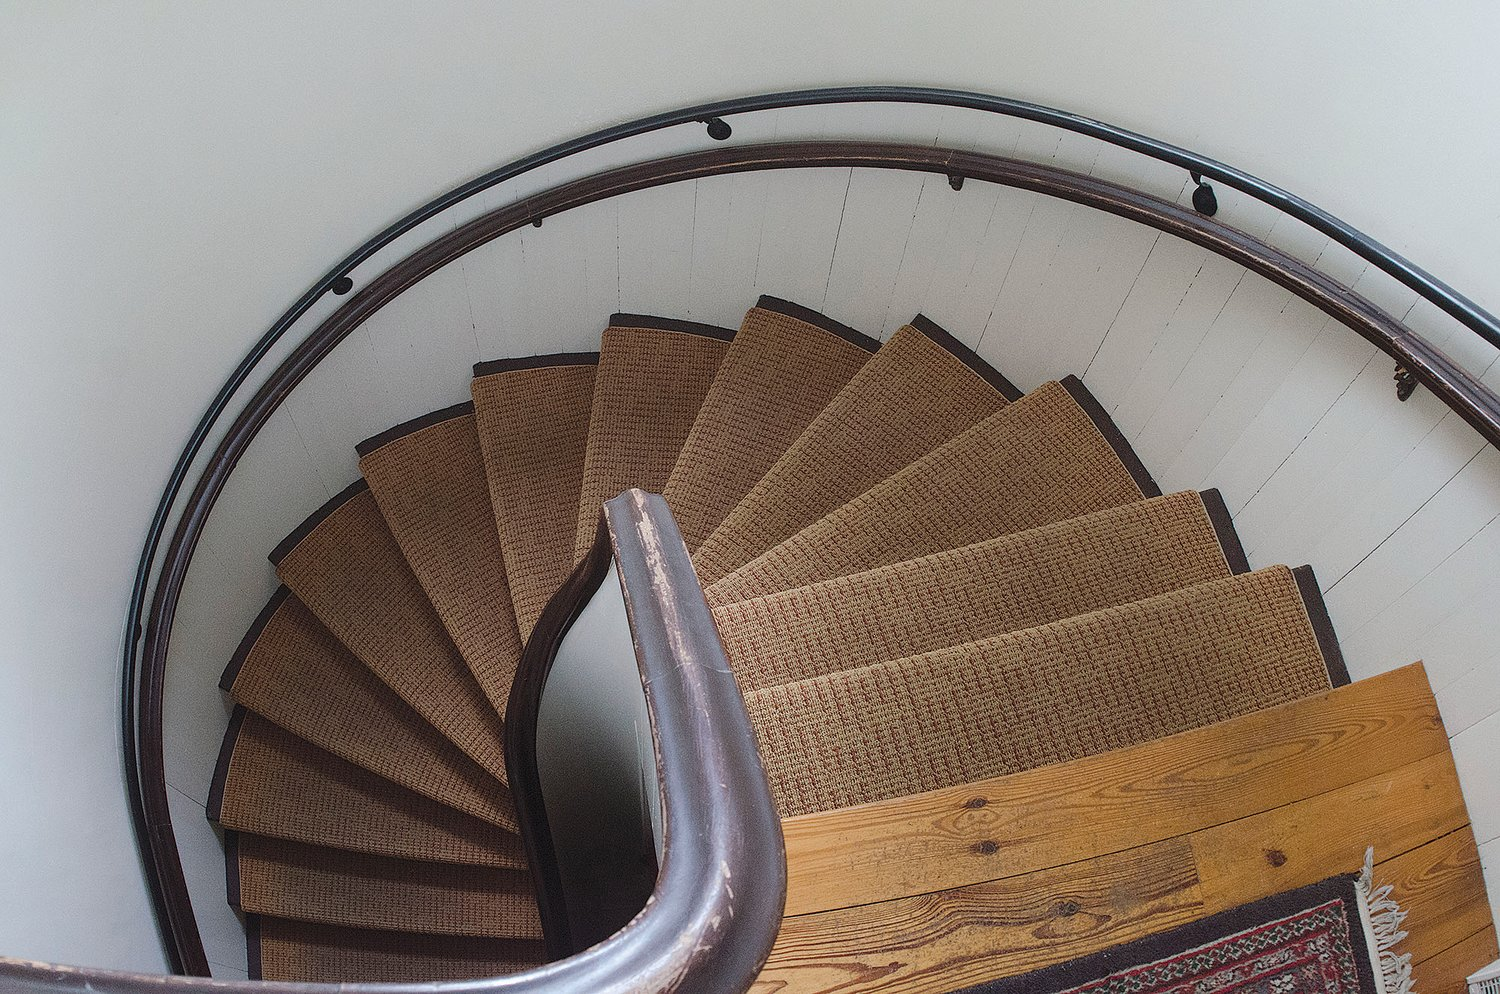 The spiral staircase, though lovely, can be a challenging way to come and go within the church.